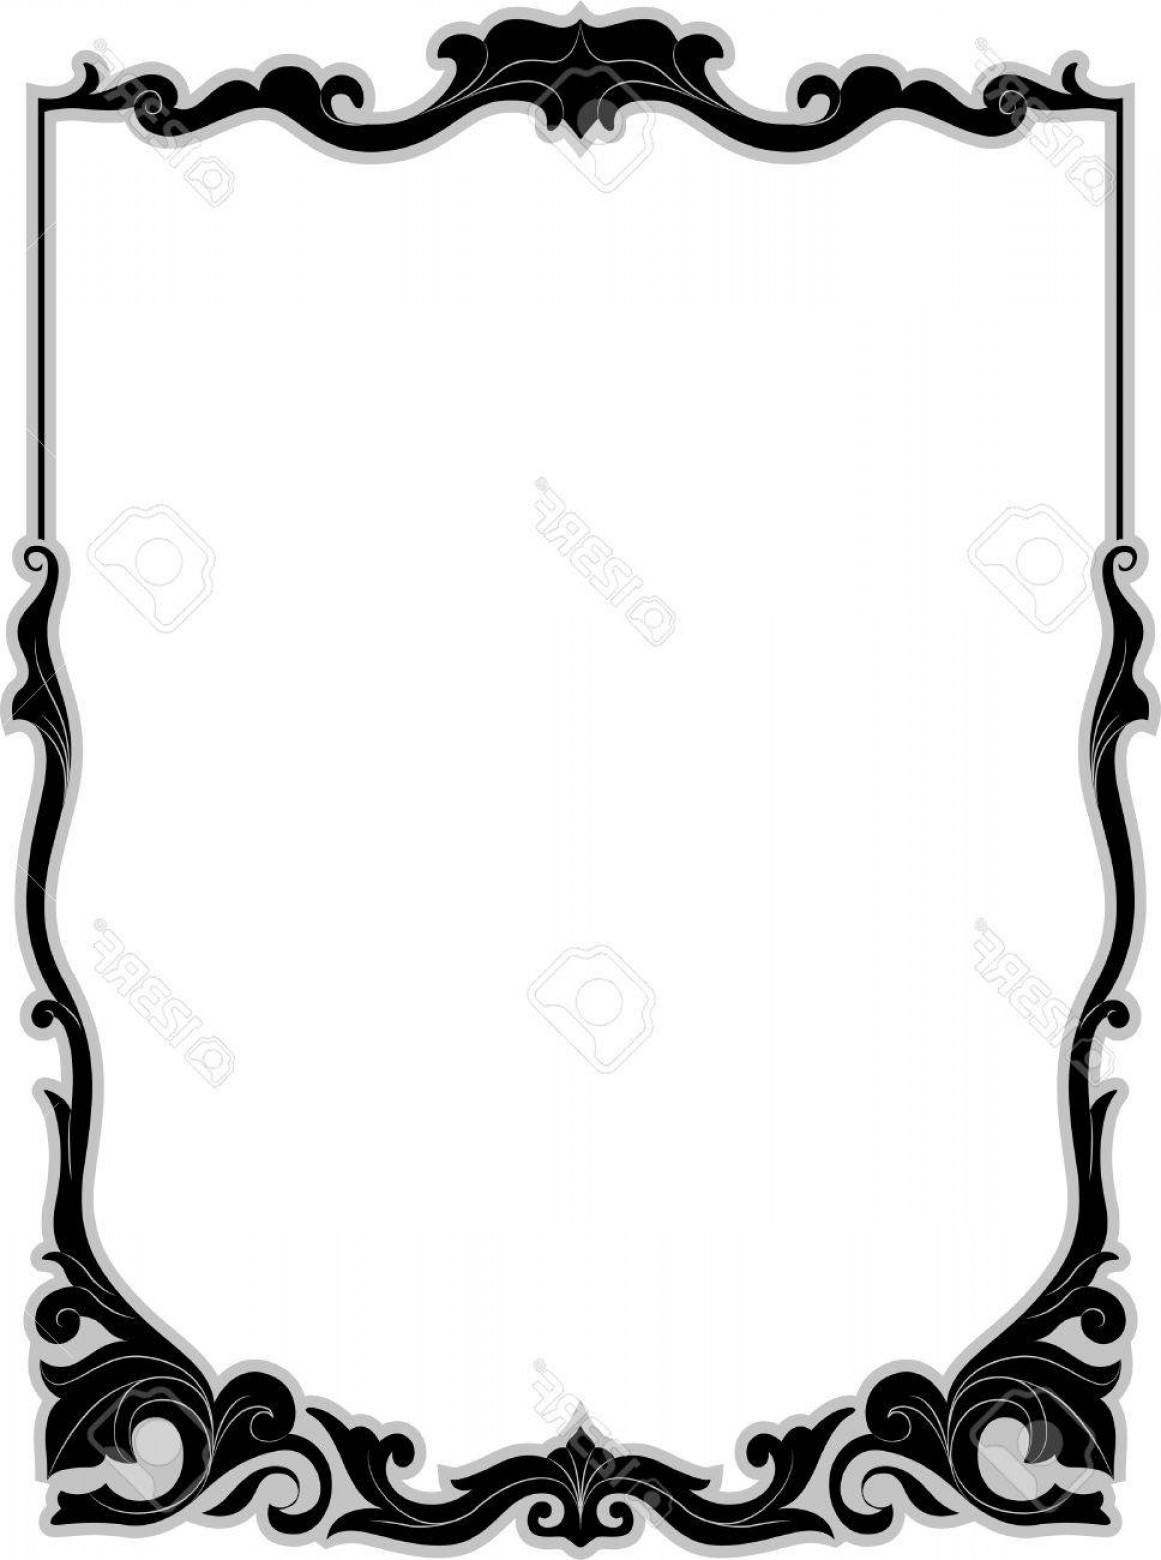 Filigree Oval Frame Vector: Photostock Vector Illustration Of A Frame With A Filigree Design